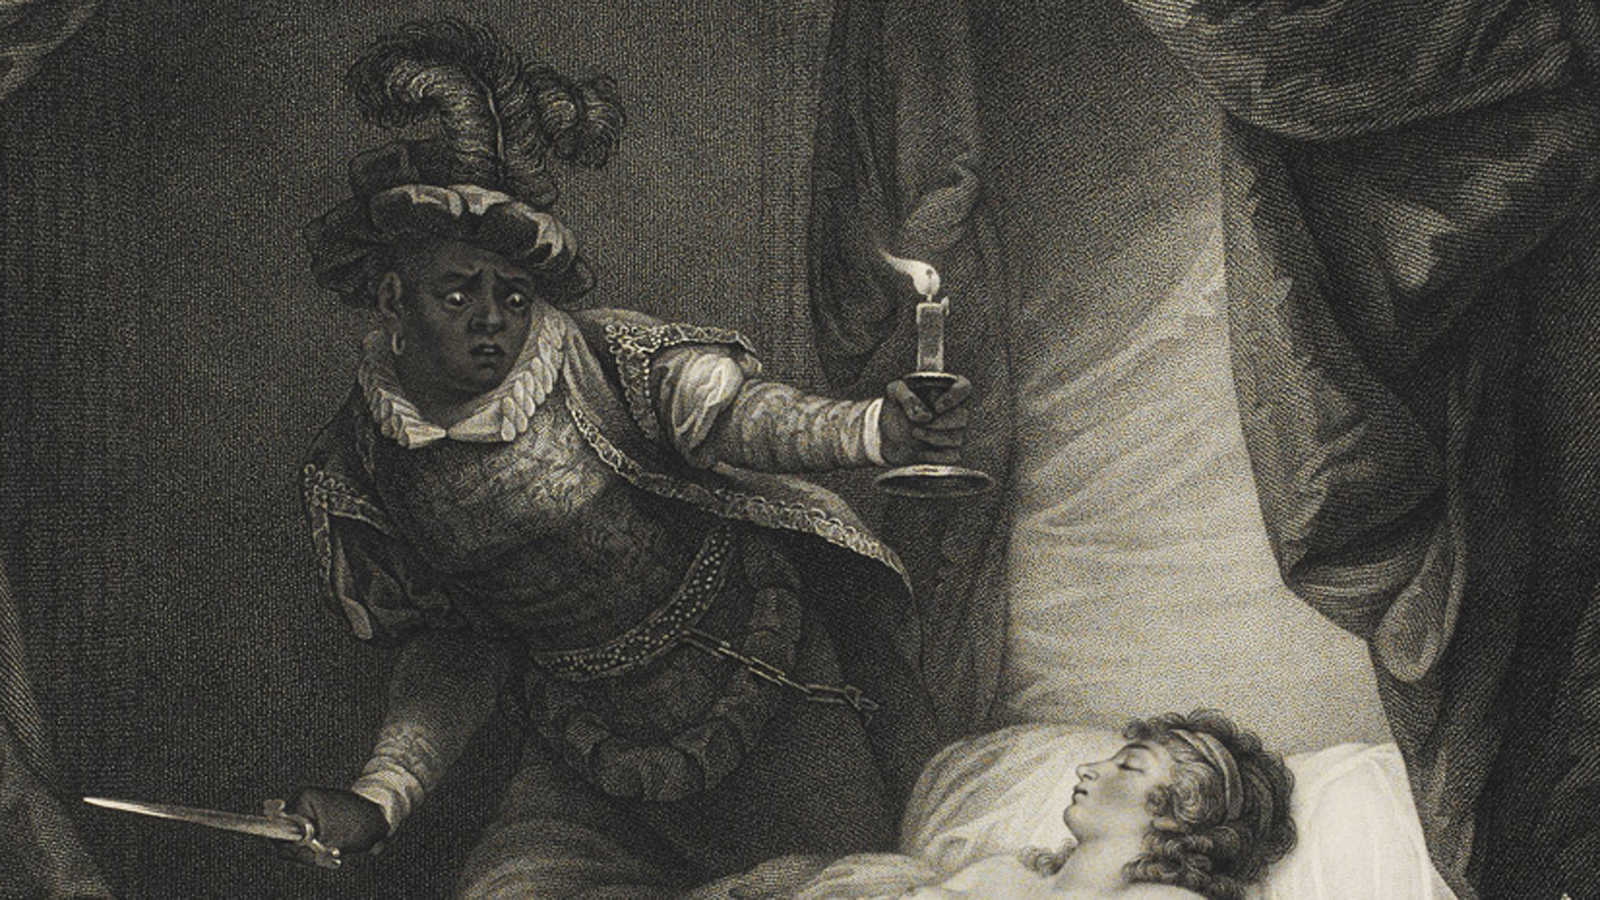 Racism, misogyny and 'motiveless malignity' in Othello